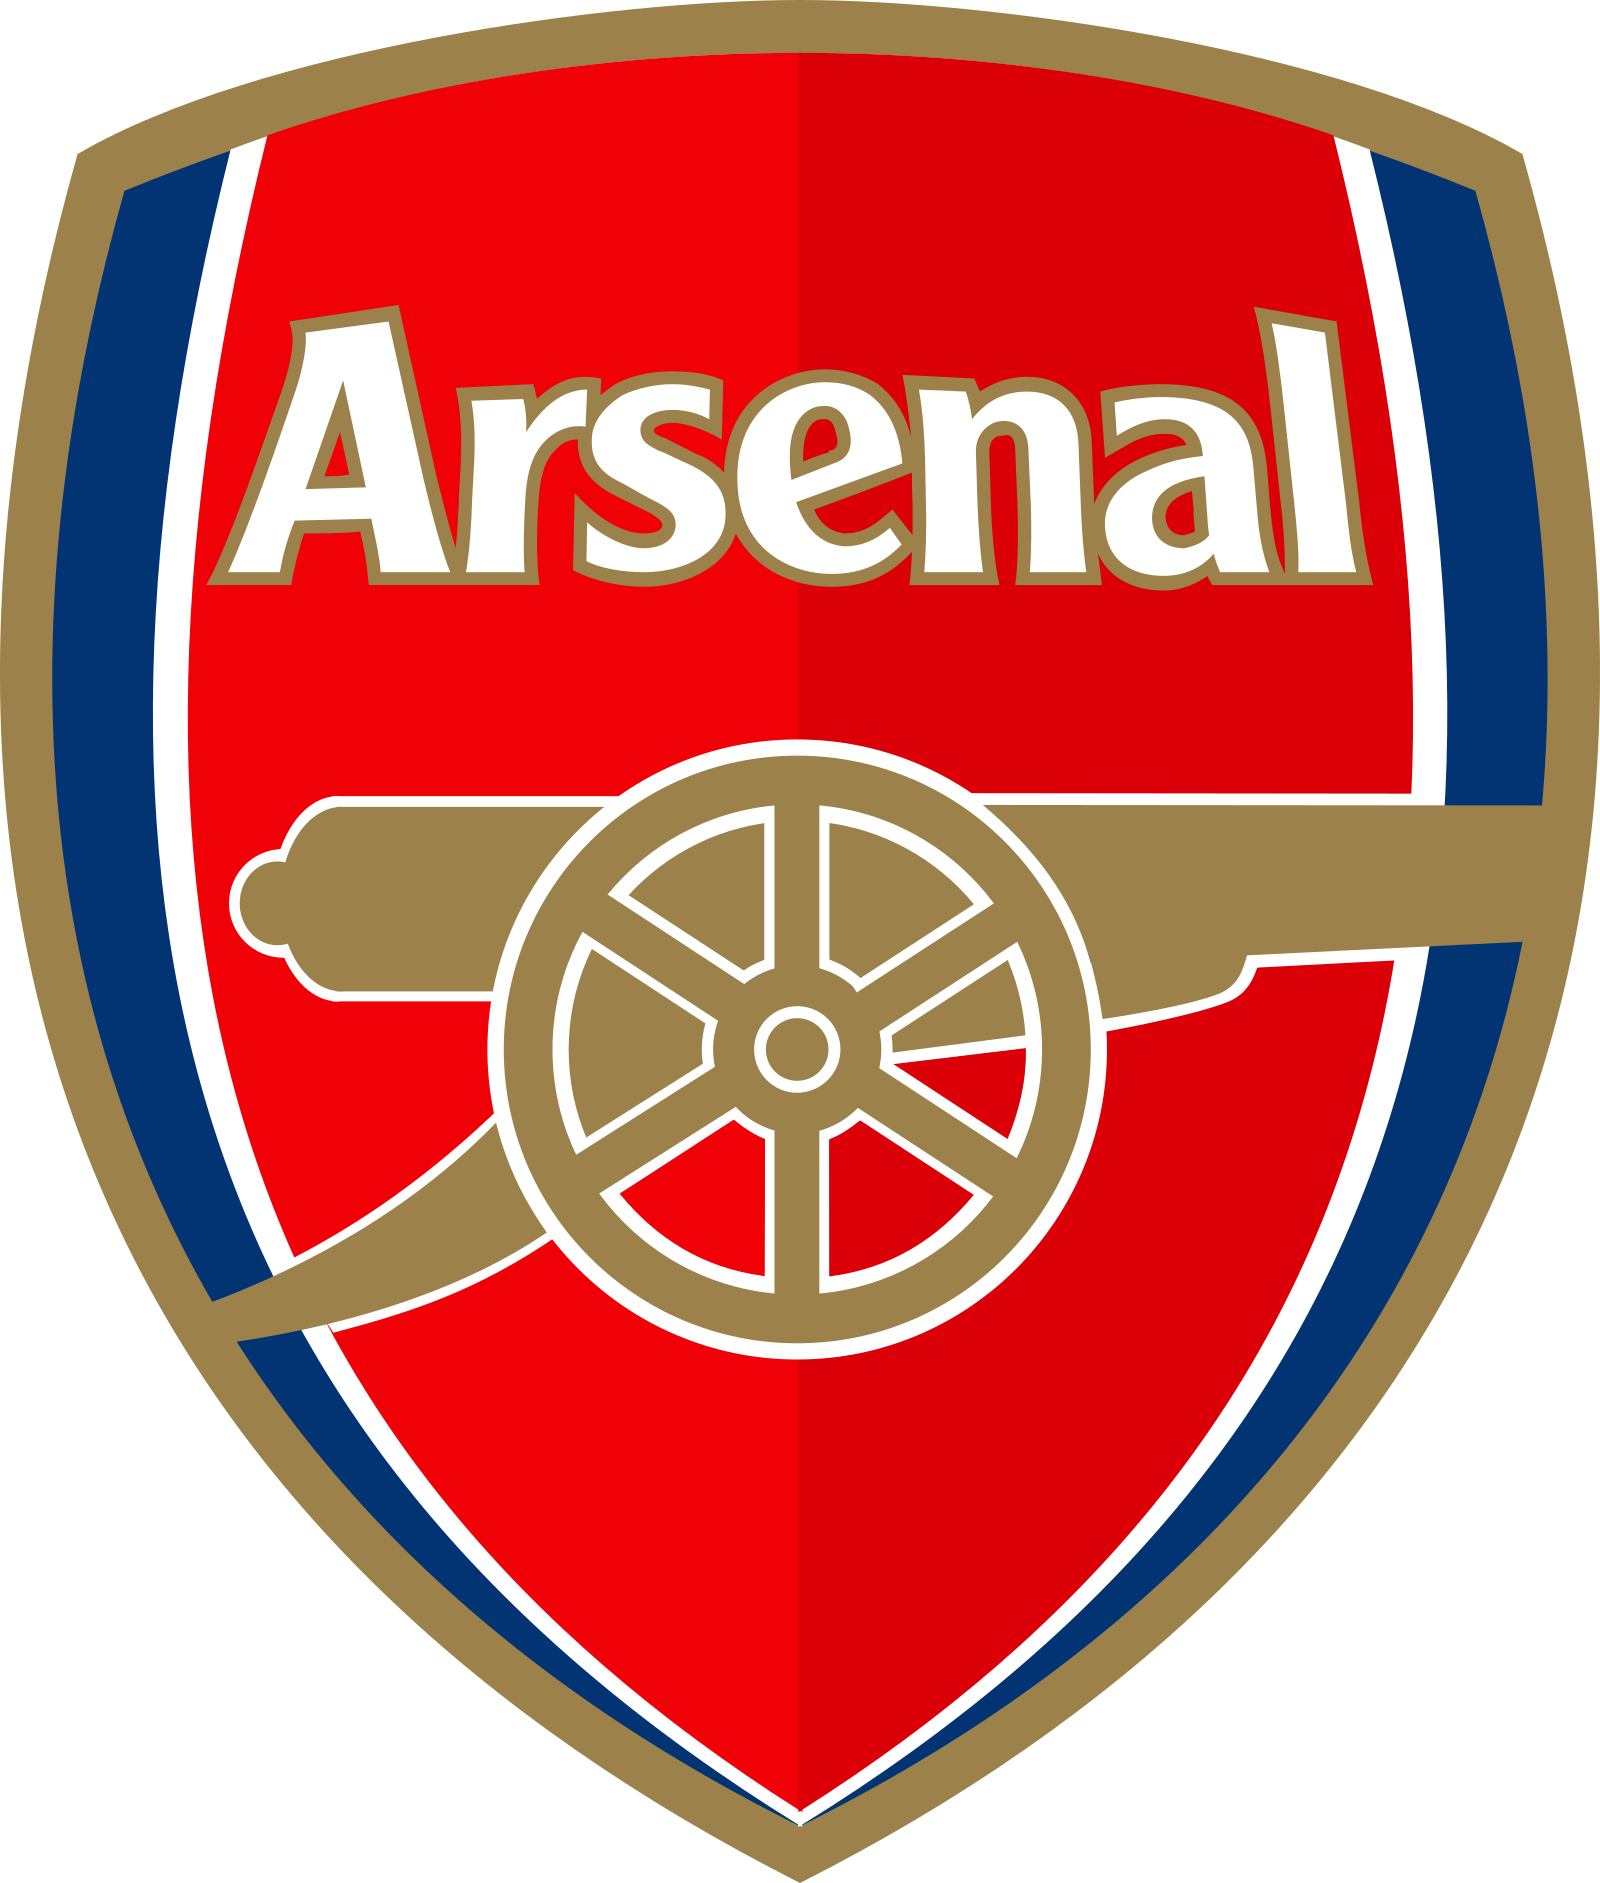 Arsenal-logo-escudo-shield-2